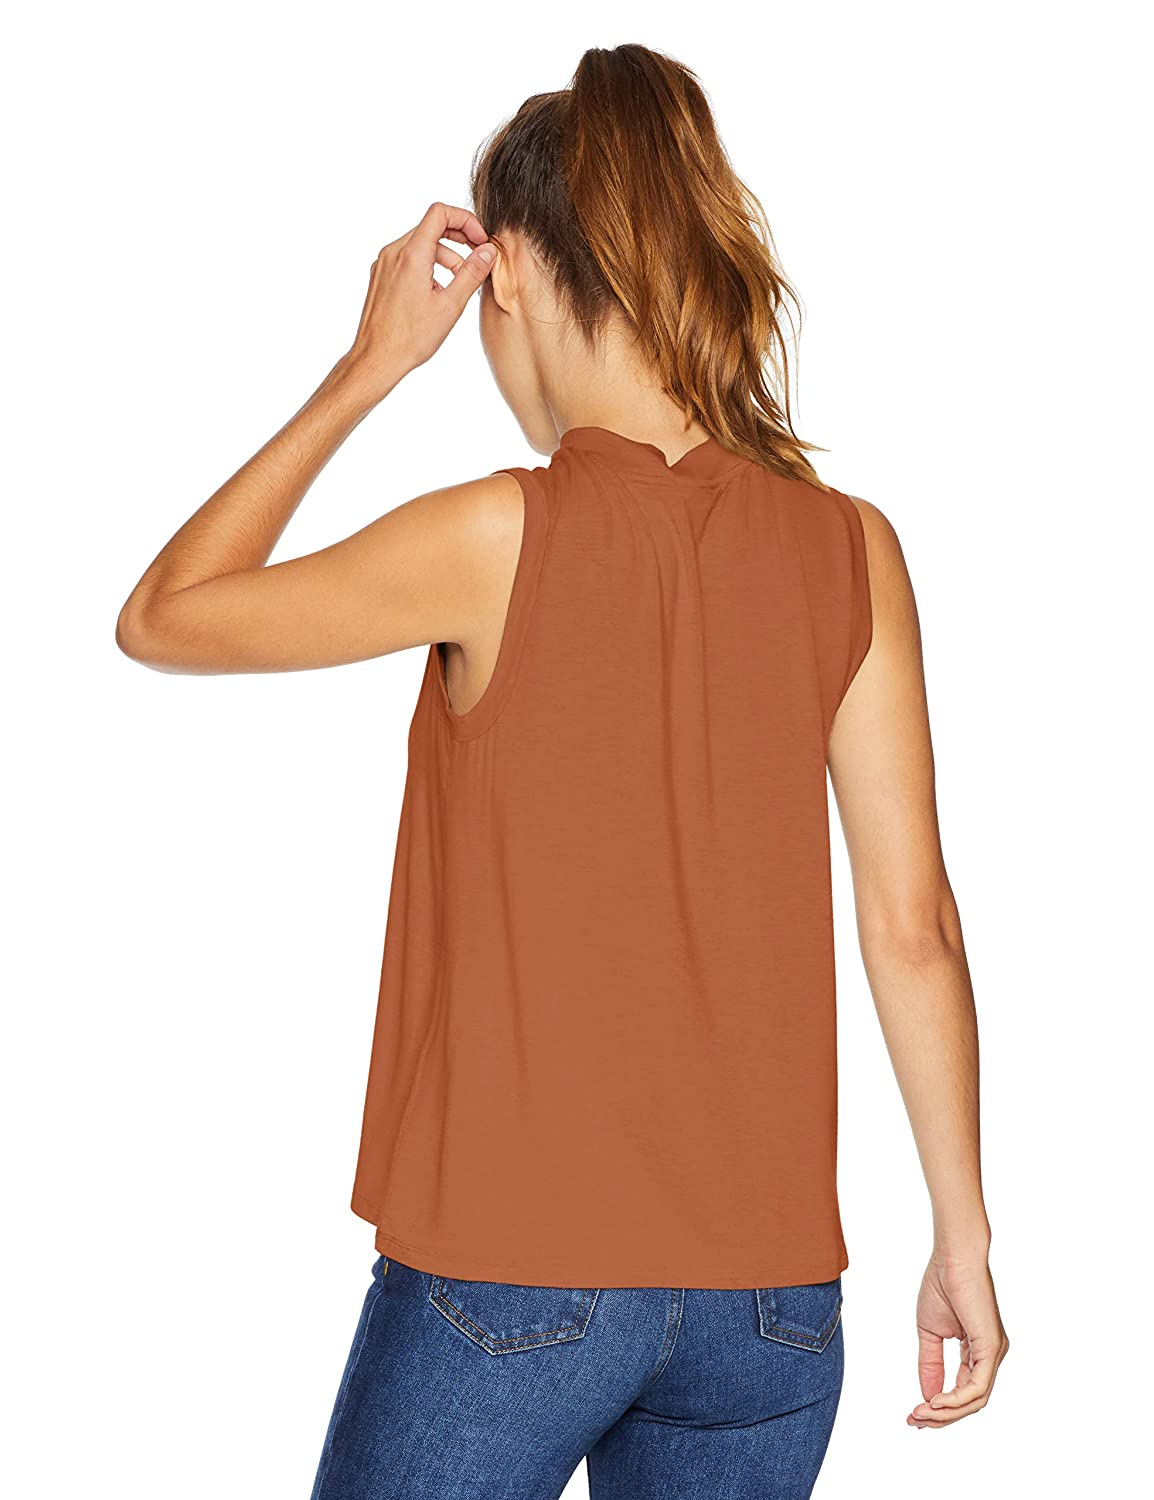 Daily Ritual Womens Jersey Sleeveless Boxy Mock-Neck Shirt Brand